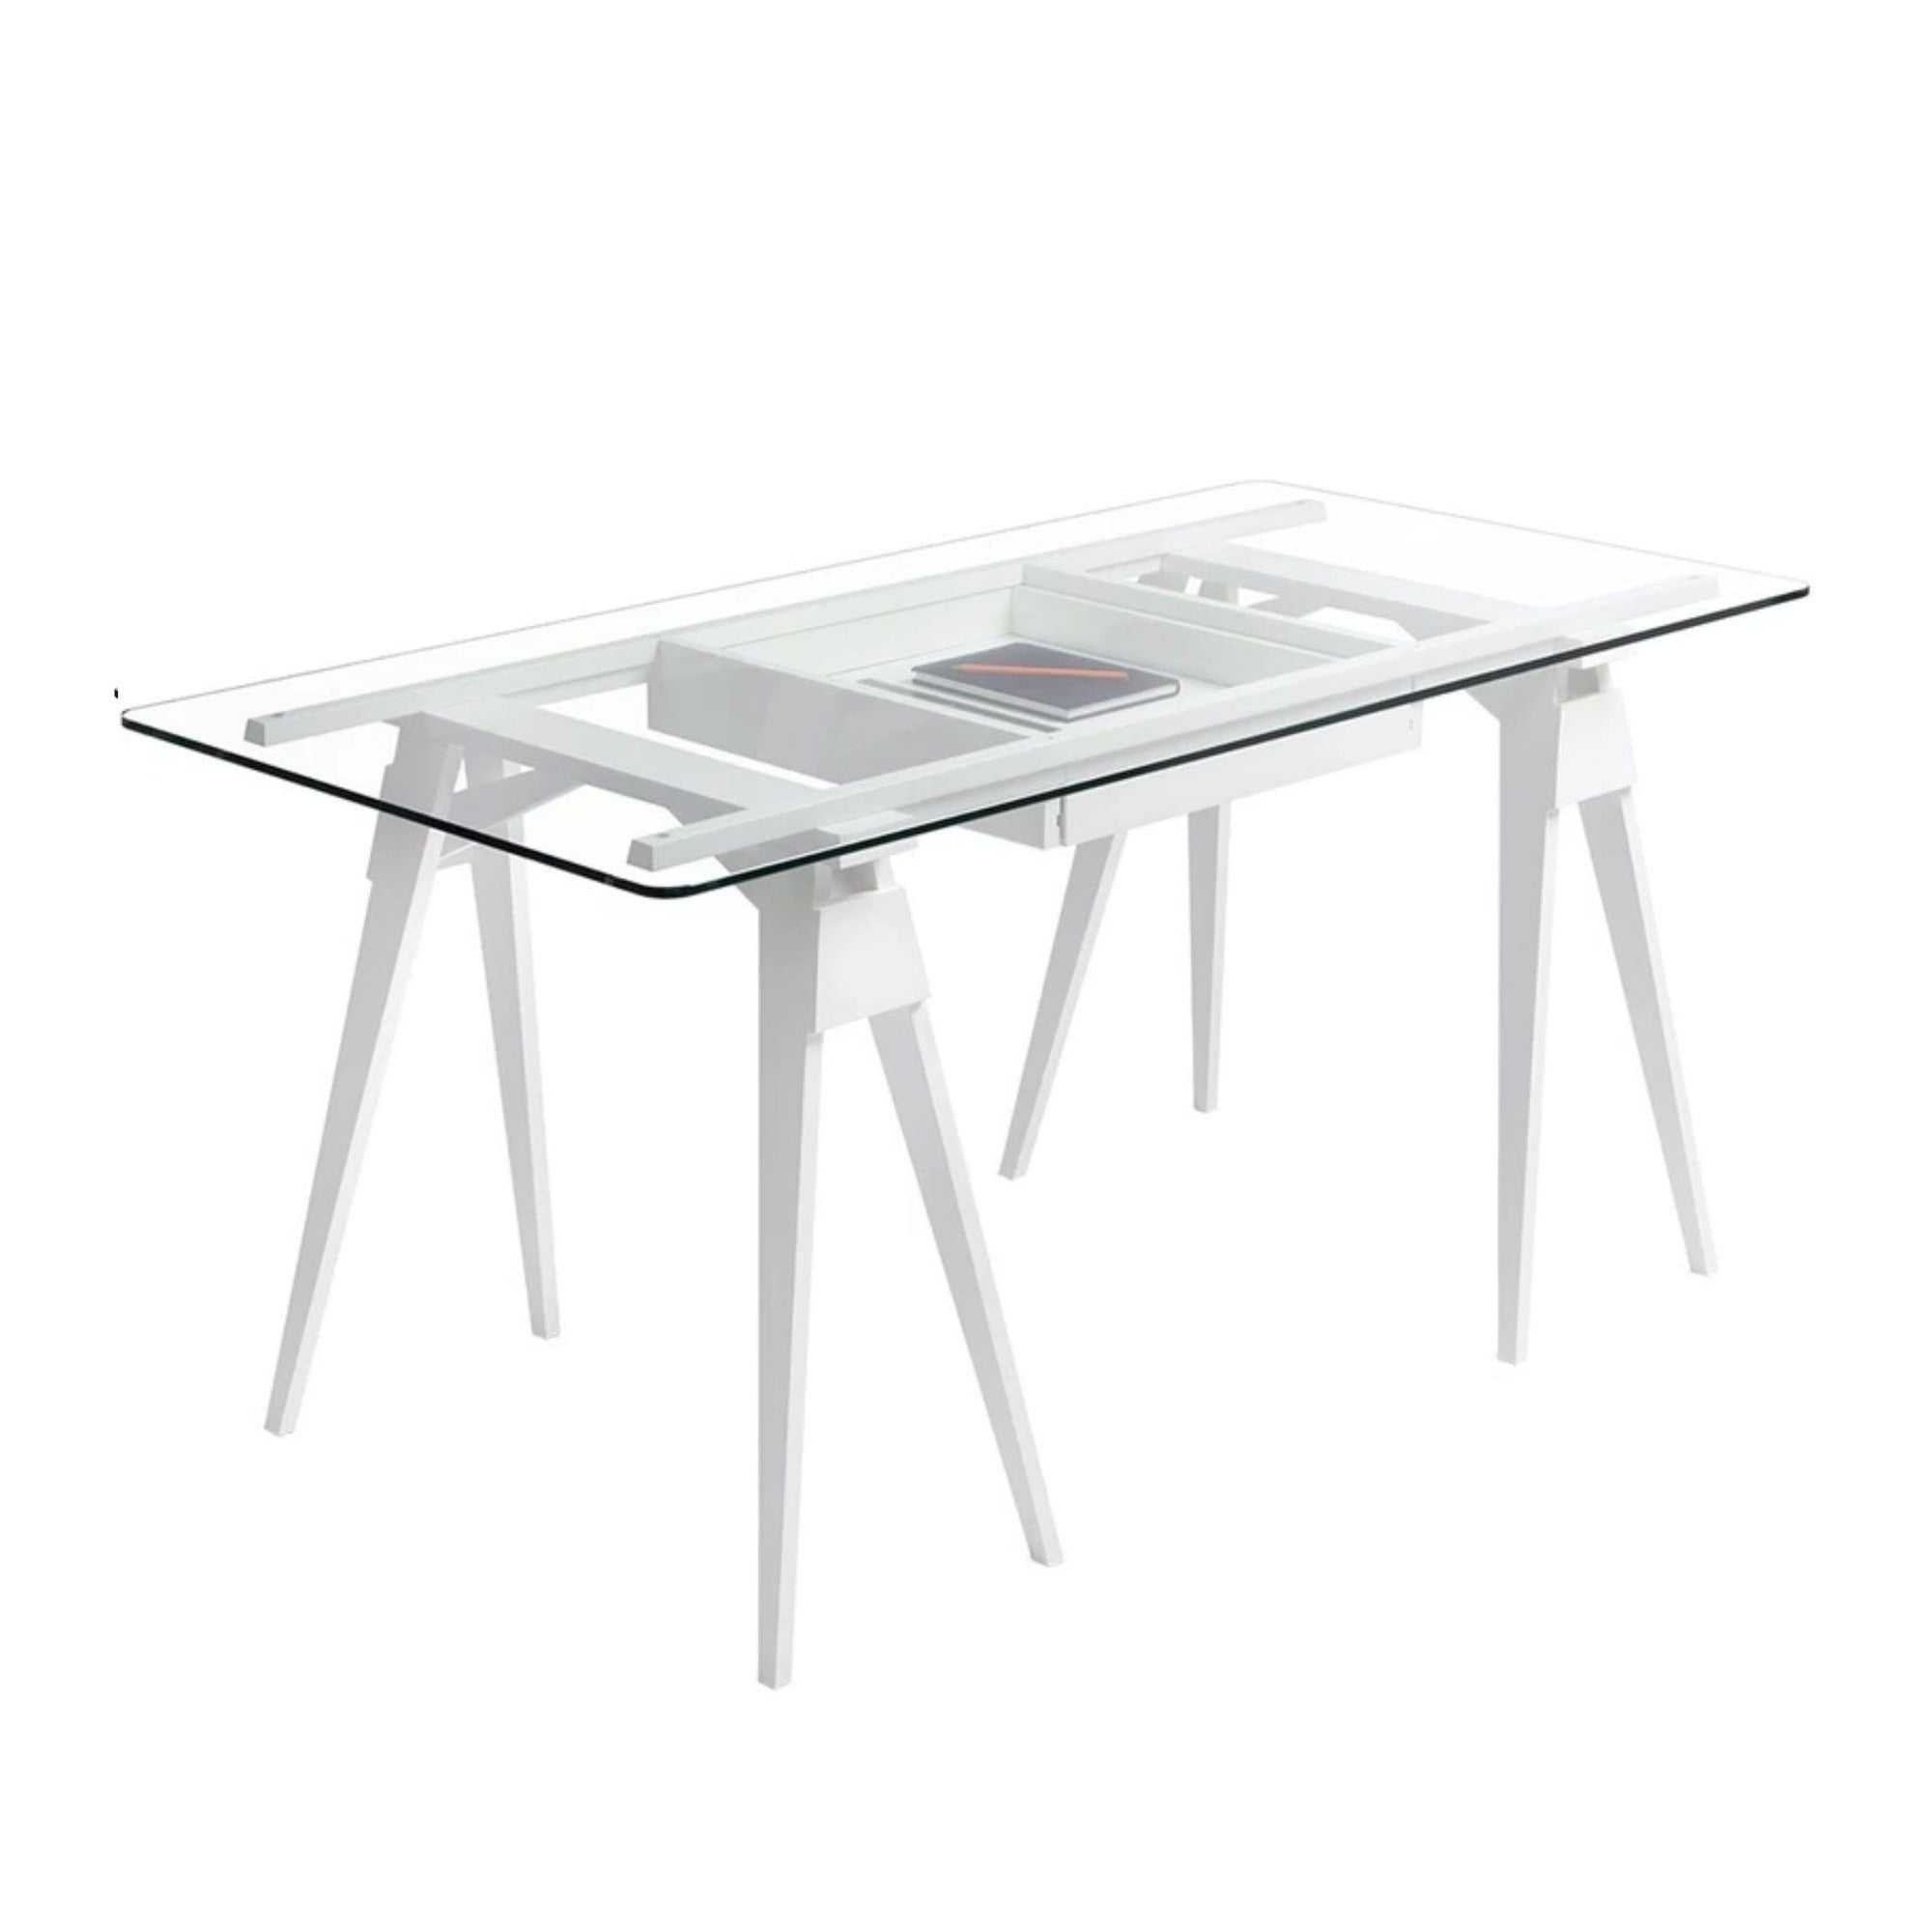 Design House Stockholm Arco desk, white